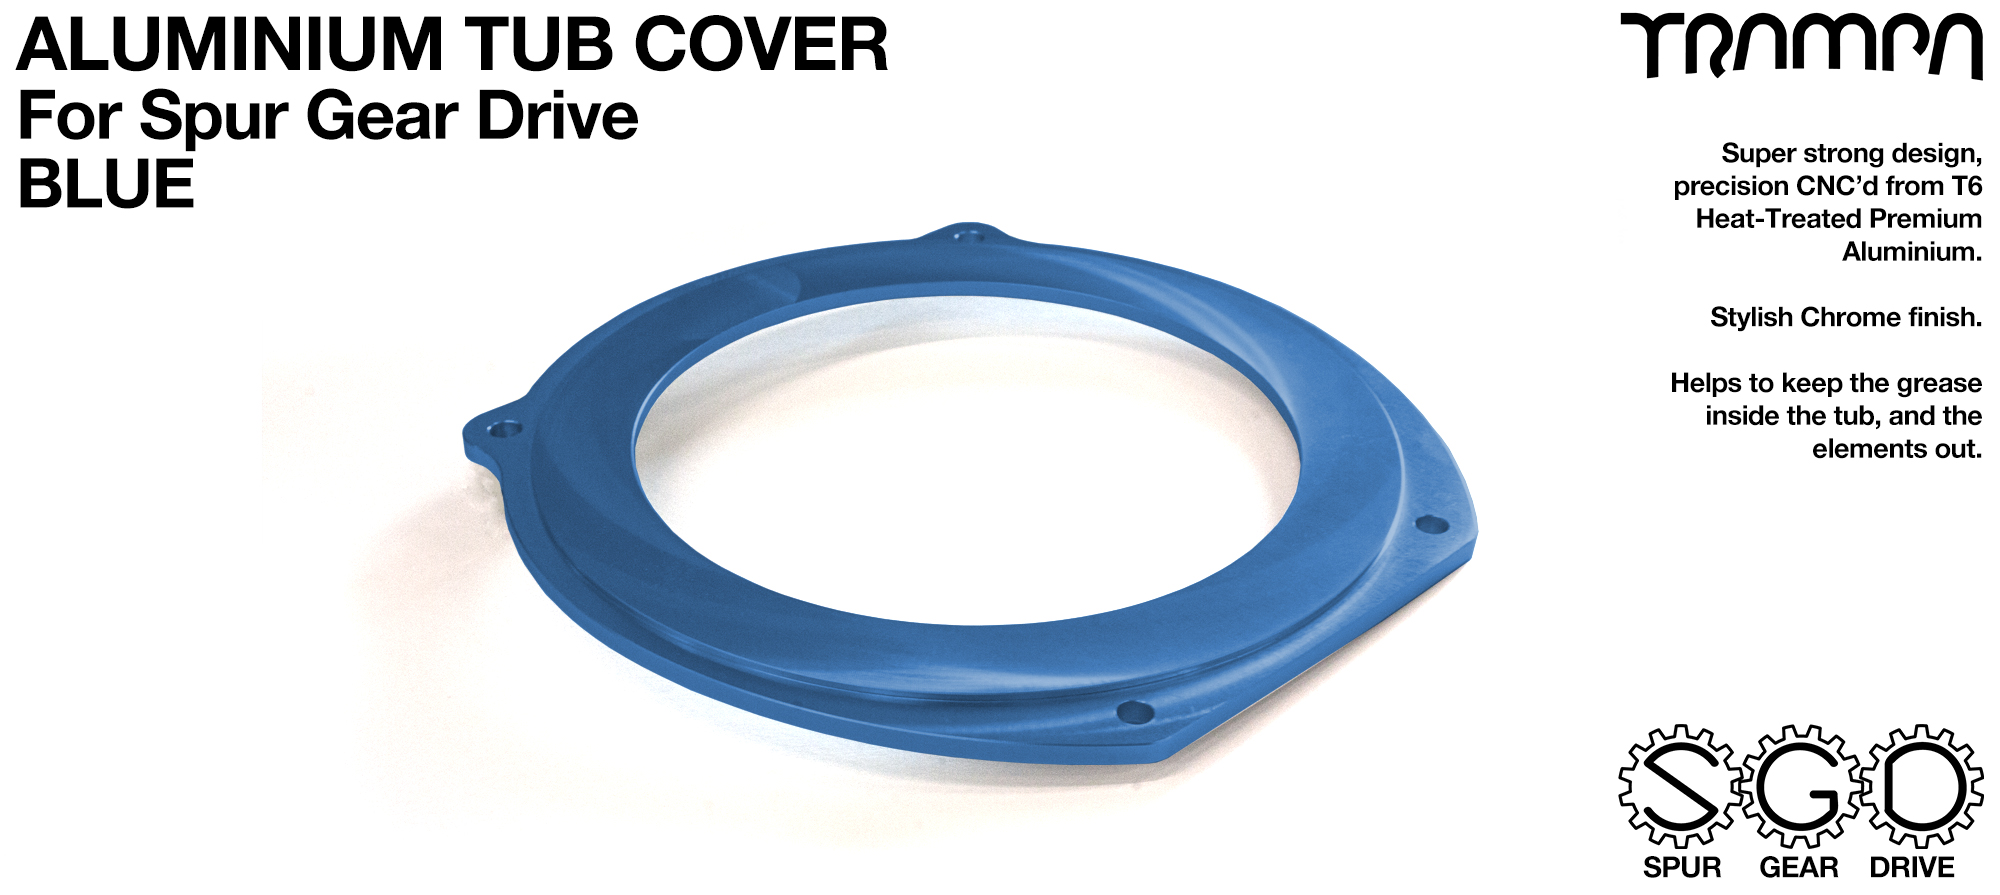 Spur Gear Drive Tub Cover - BLUE